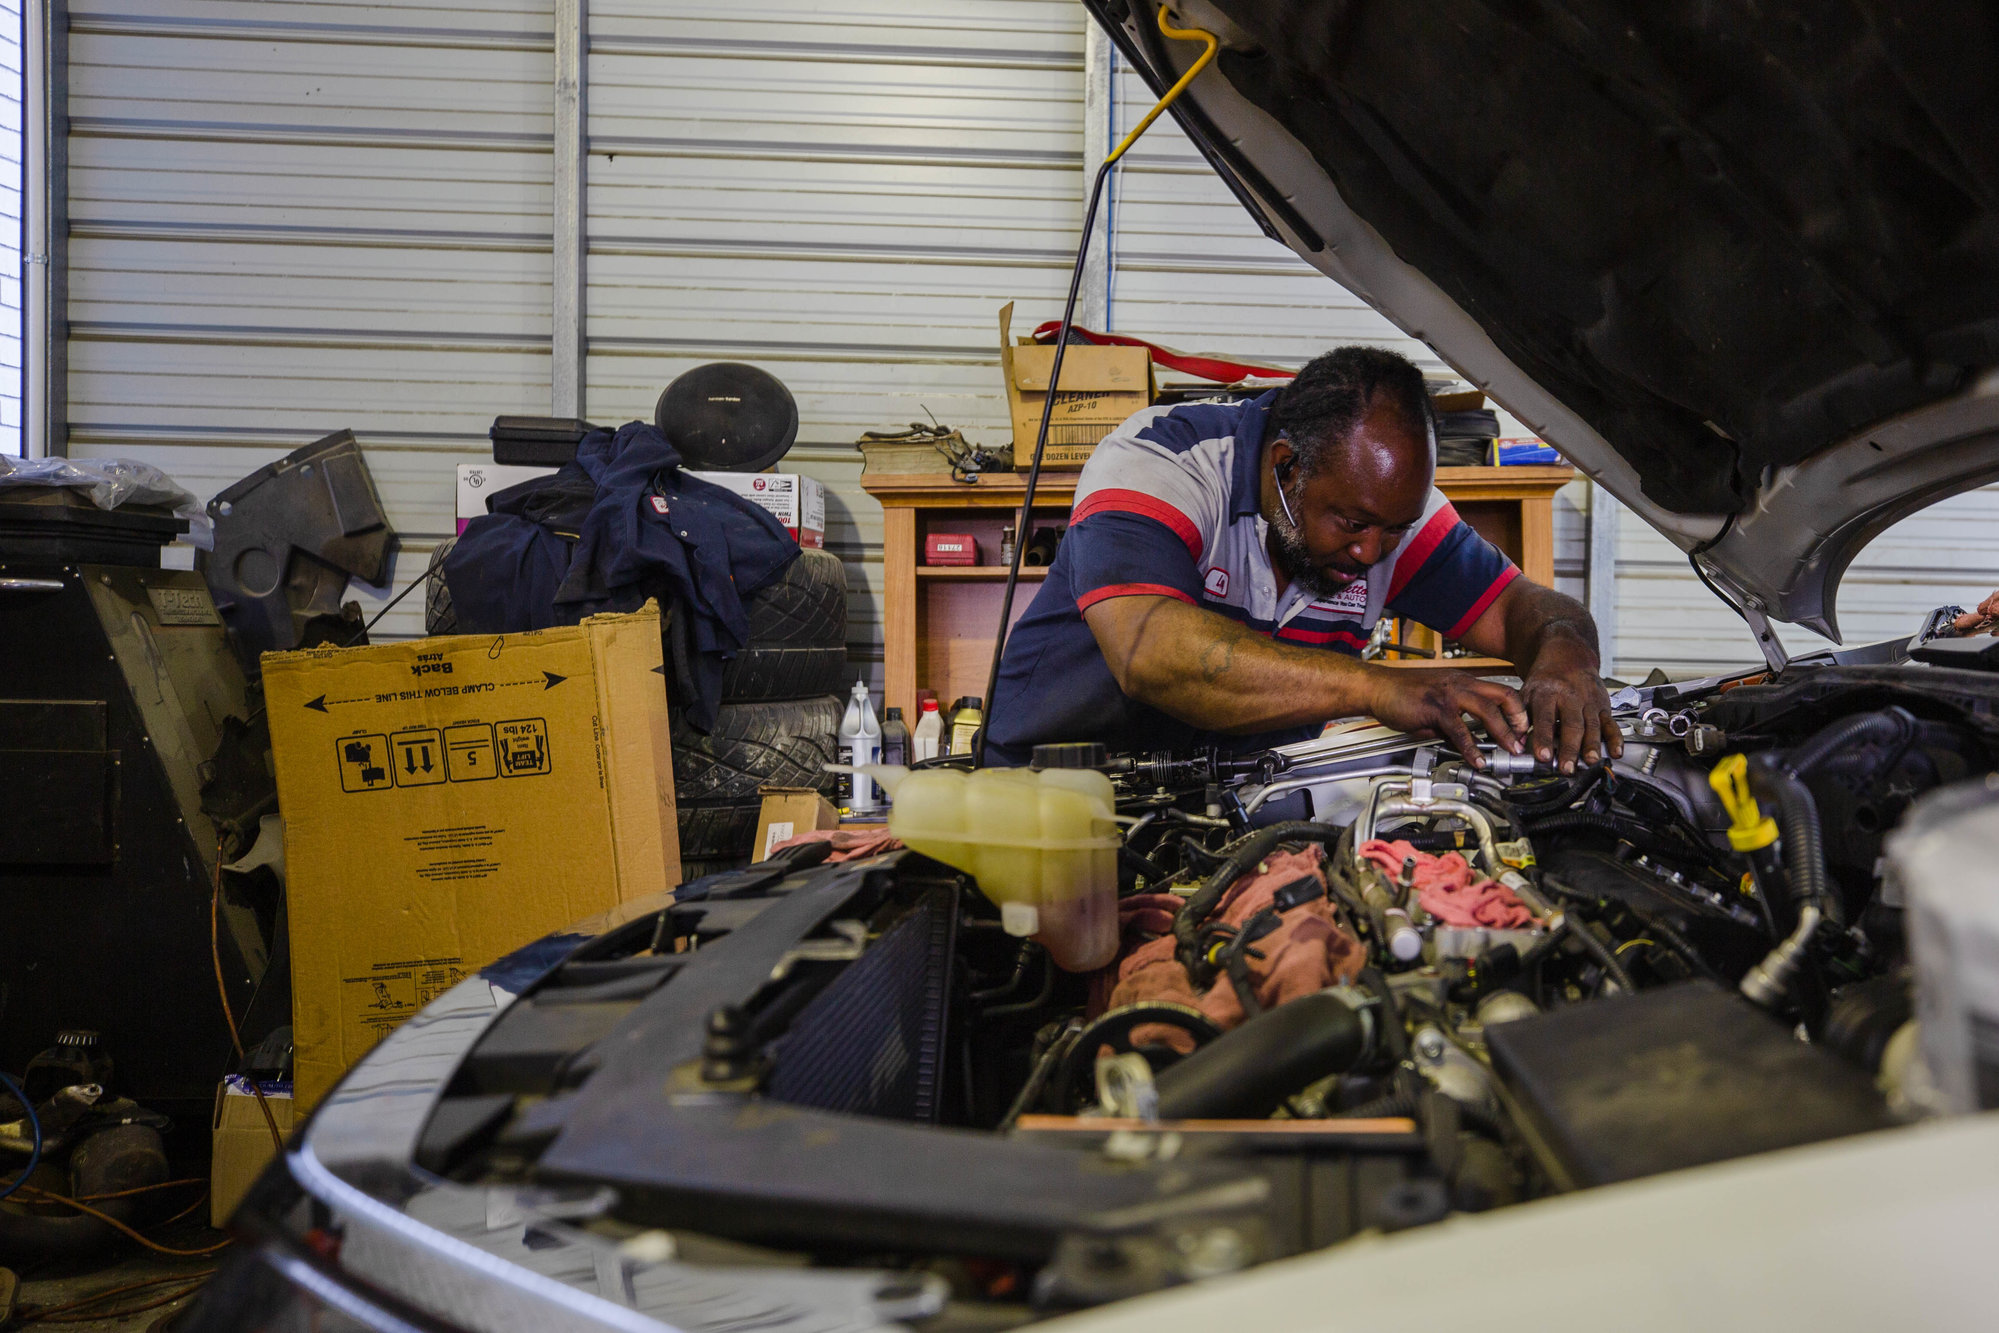 A Palmetto Tire and Auto mechanic works on a vehicle Thursday. The tire and auto repair shop has received an outpouring of community support since a shooting incident on Oct. 21, according to owner Philip Marlowe.